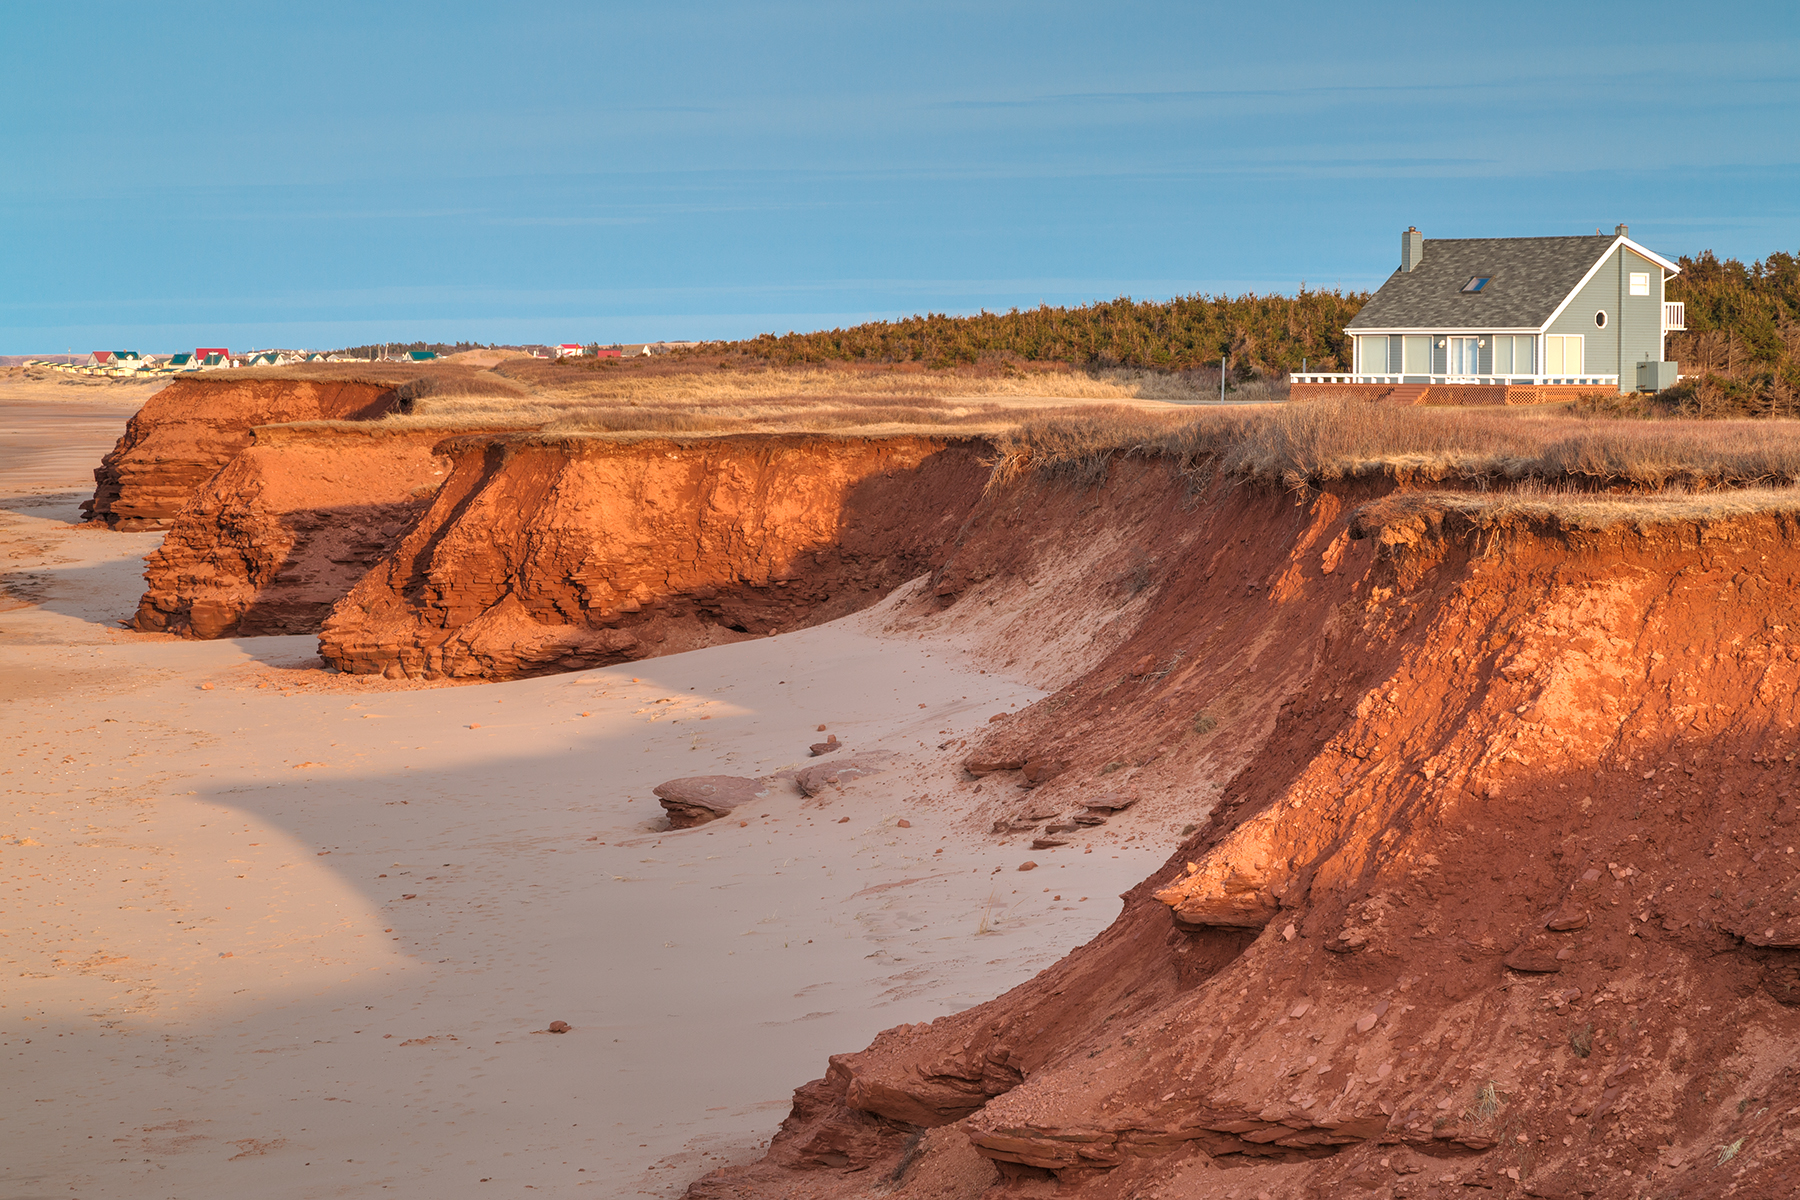 Thunder Cove Beach Cliffs - HDR, Angle, Perspective, Rural, Rugged, HQ Photo